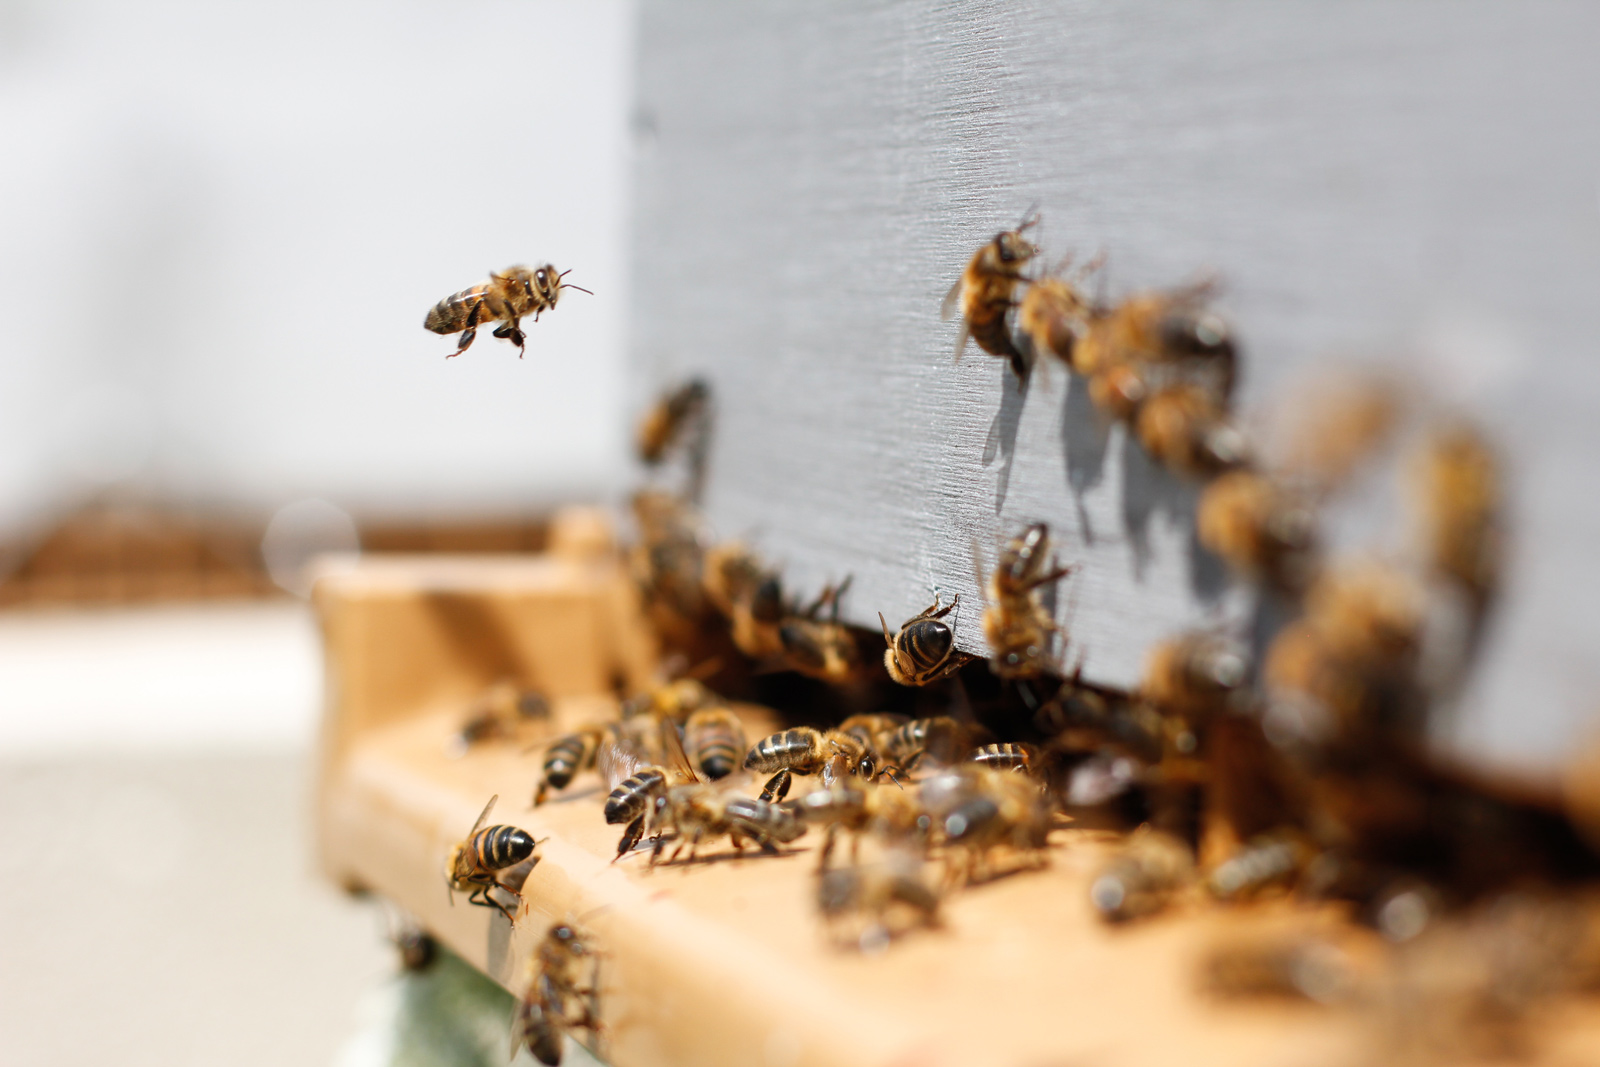 Worker bees hover around the hive.